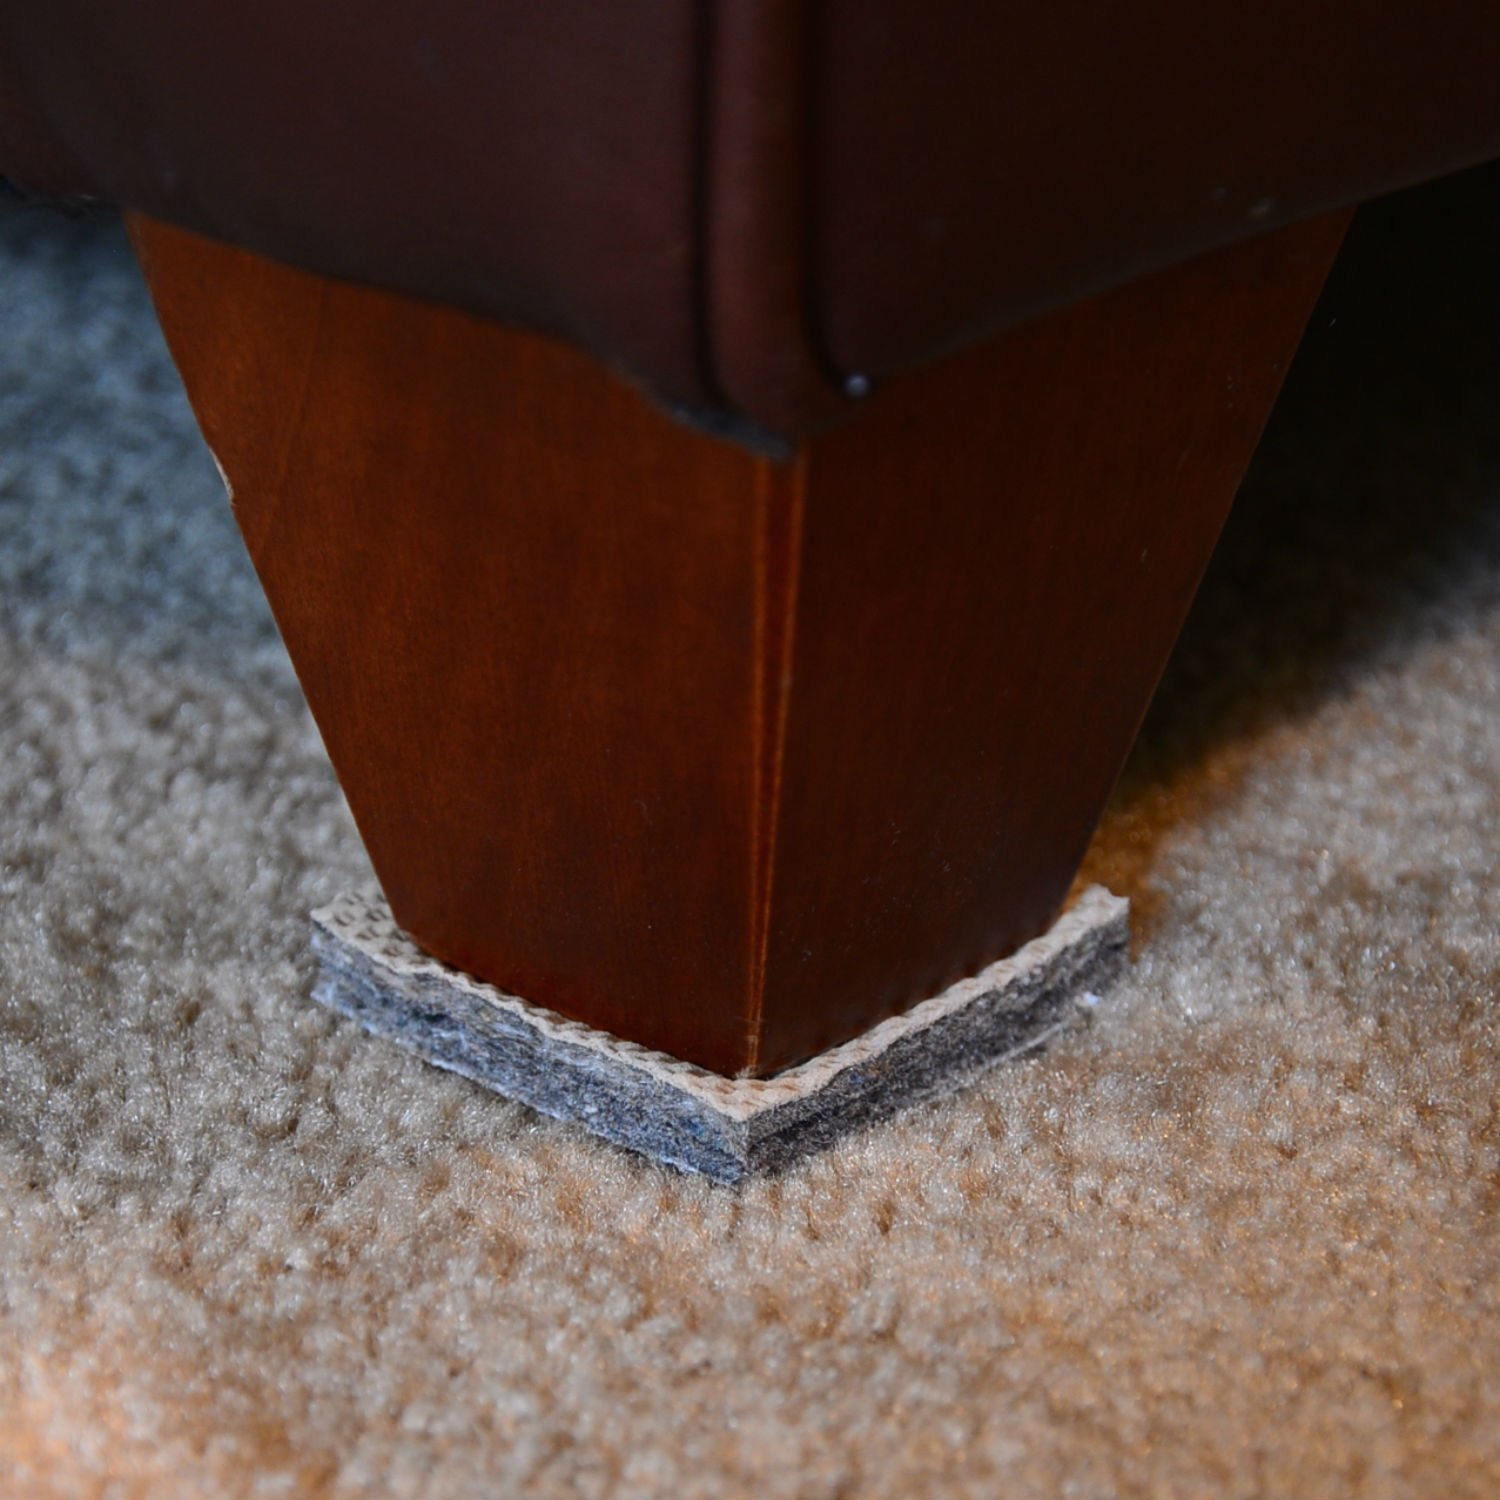 DURA-GRIP® Non-Slip Gripper Pads STOP FURNITURE FROM SLIDING ON CARPET - No Sticky Mess (2 inch square - set of 4)